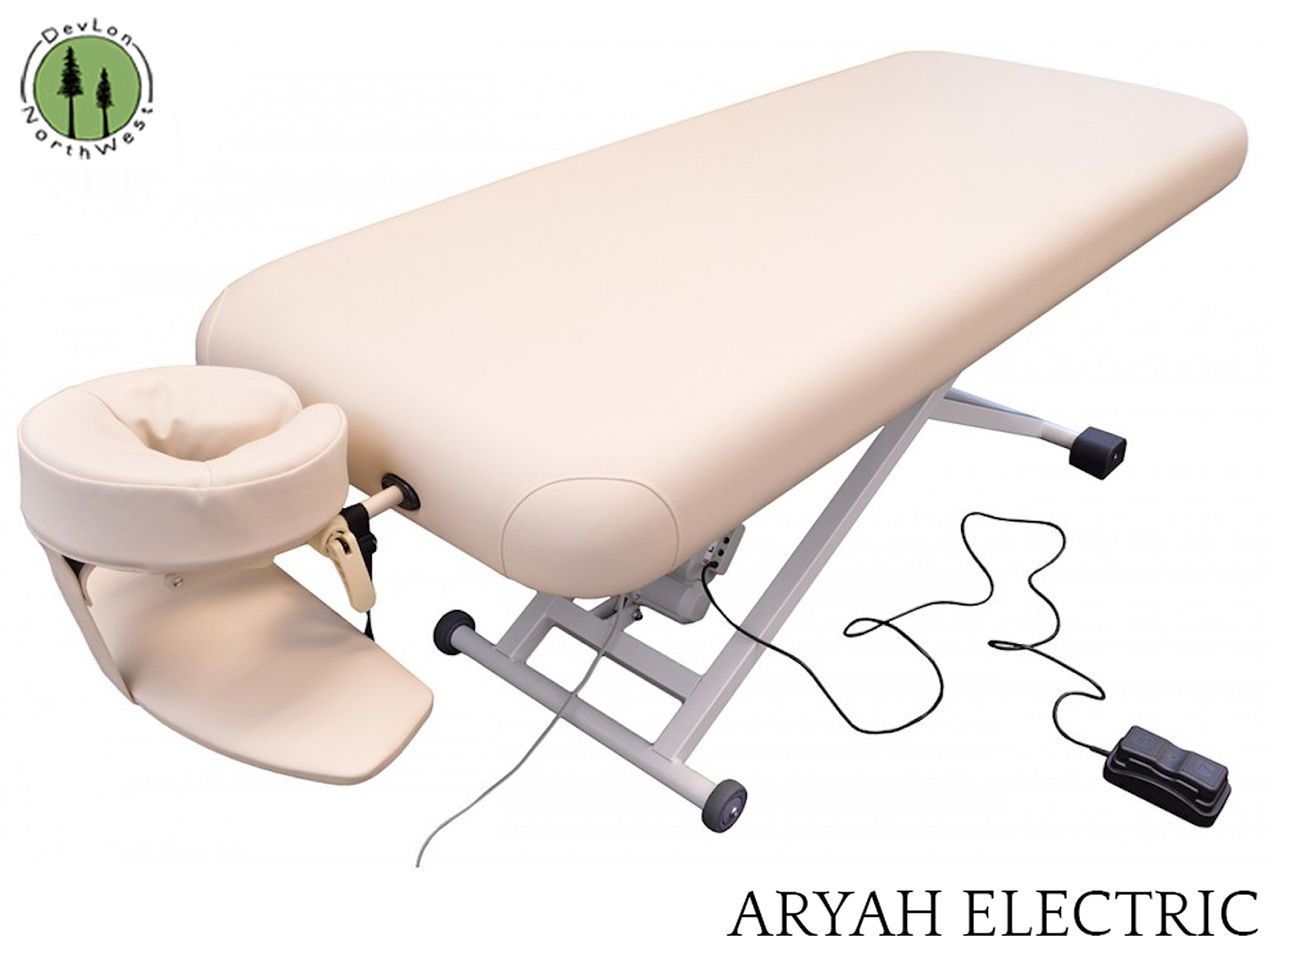 Stationary Massage table. DIY Assembly. Easy set up. Comfort and easily  adjustable. #electric #stationary #massagetable #massage #timetorelax  #comforting ...